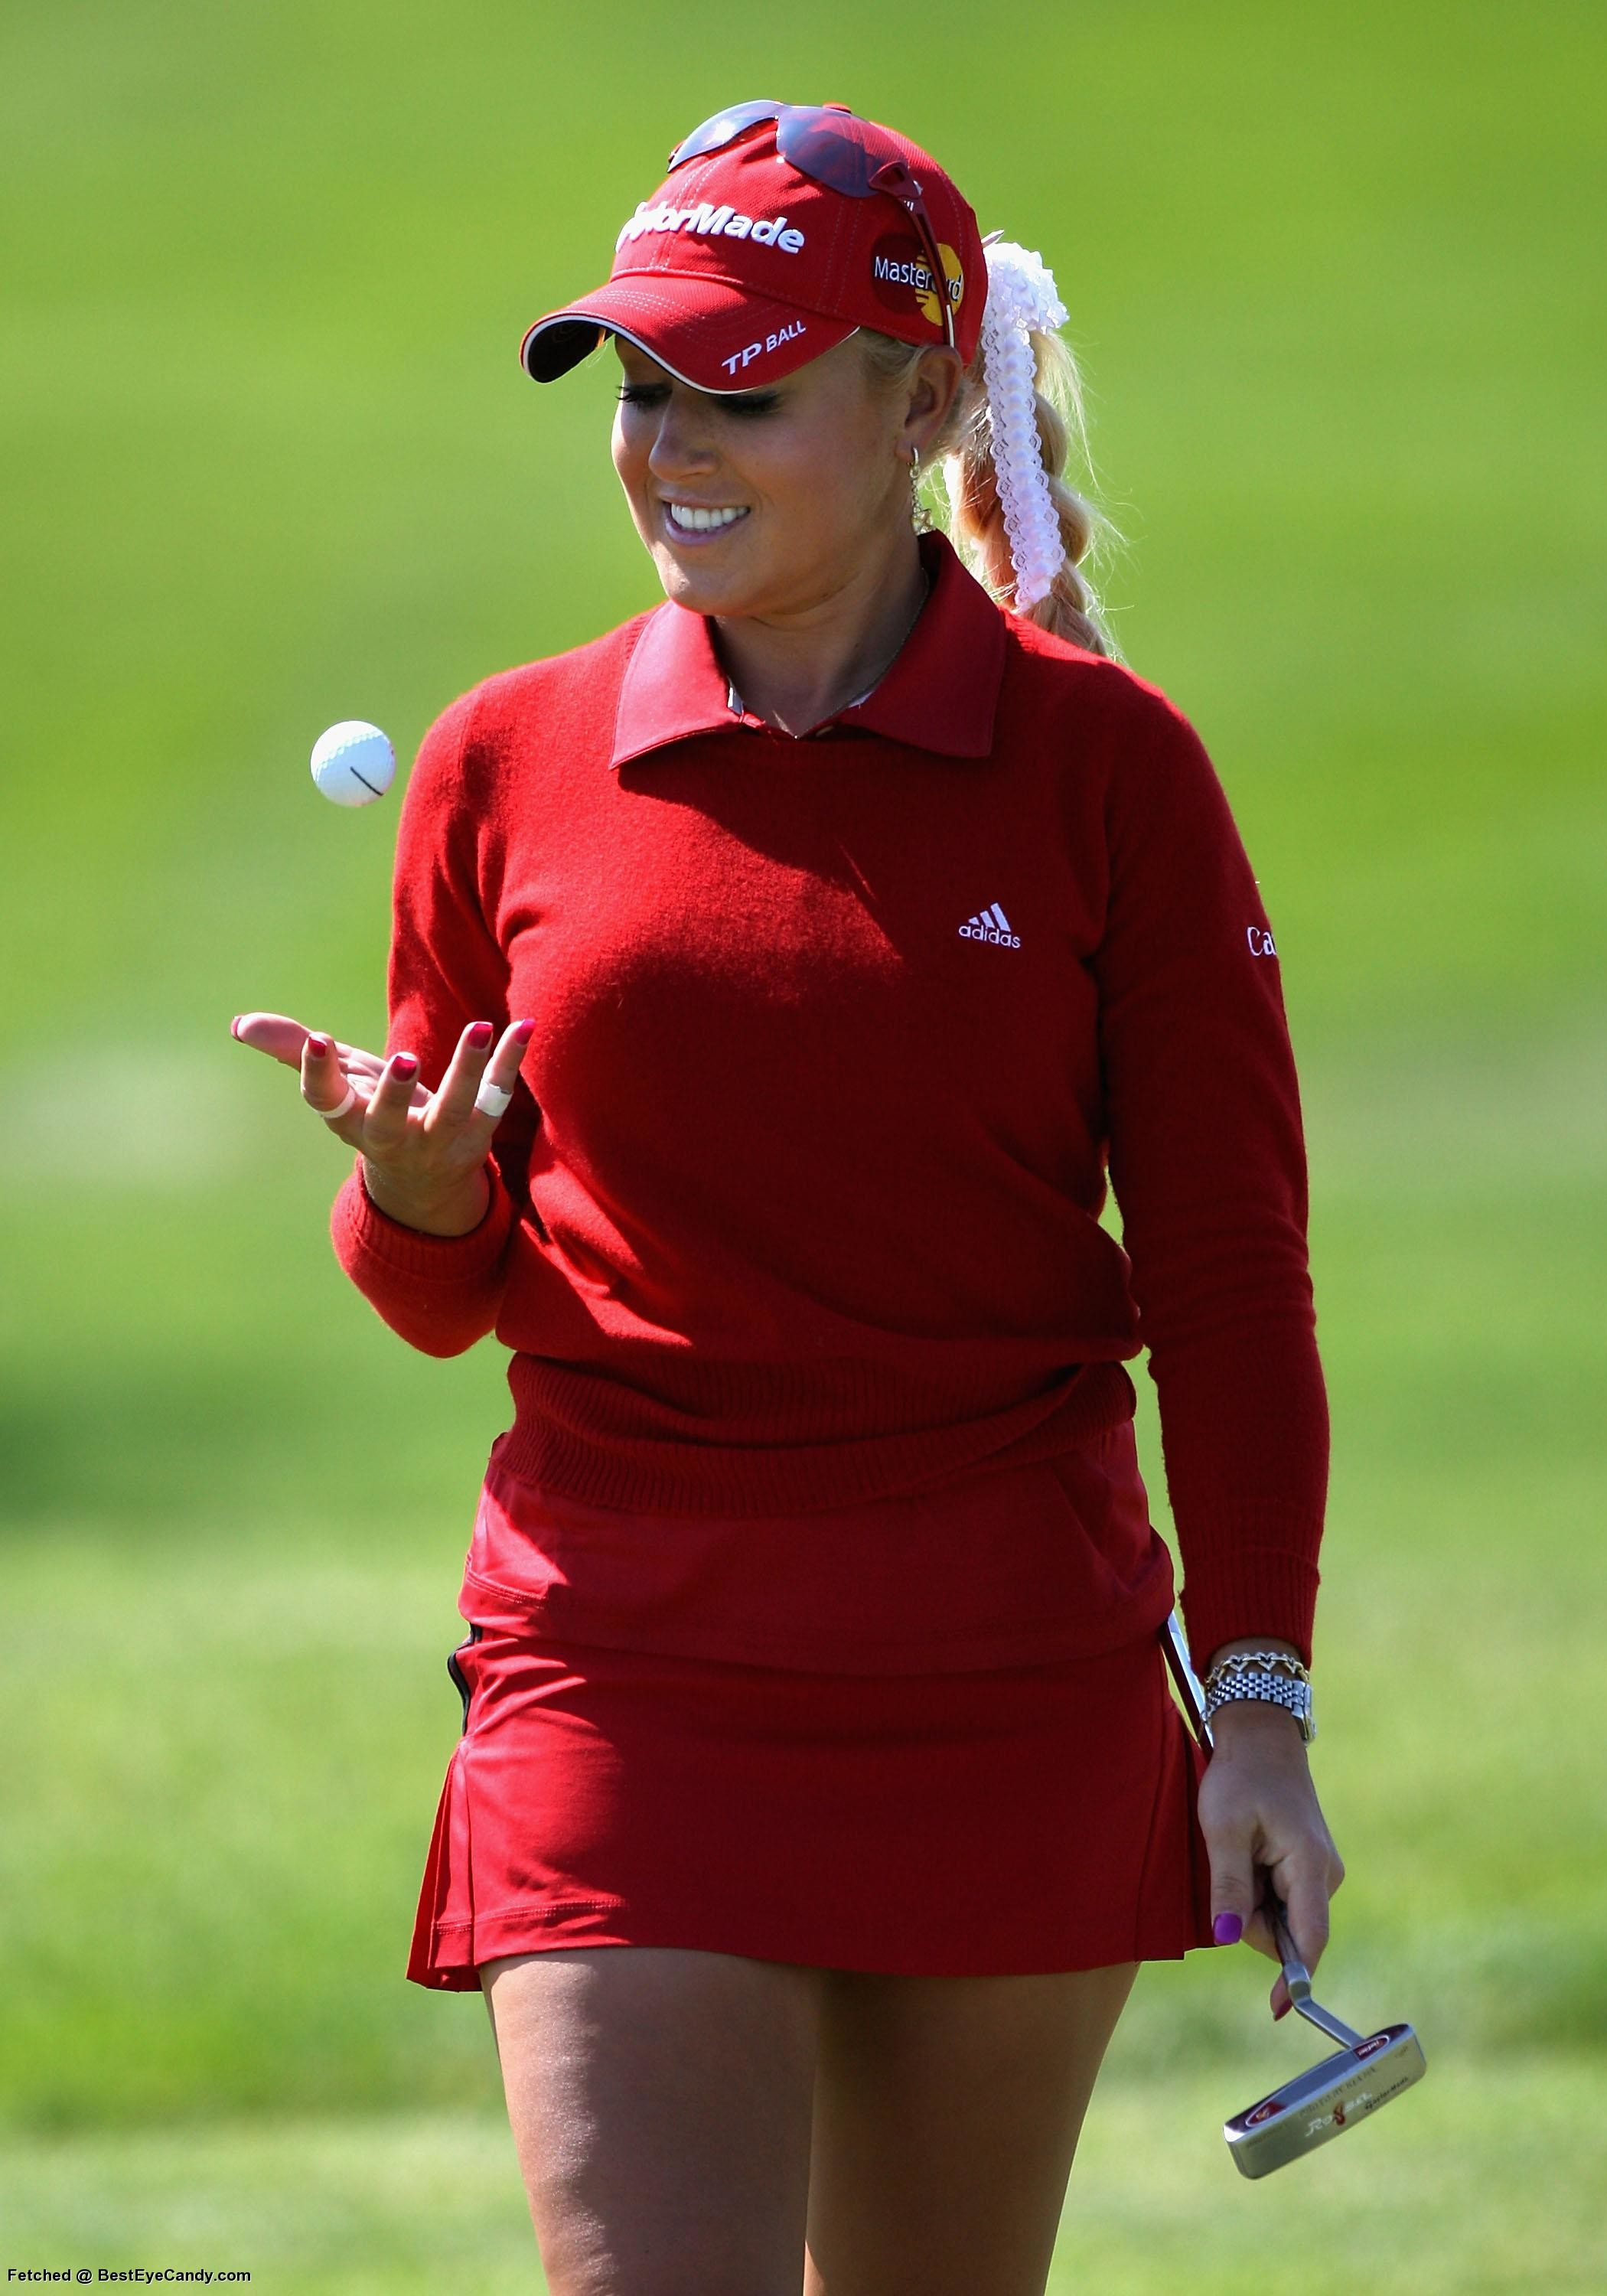 Photos of natalie gulbis